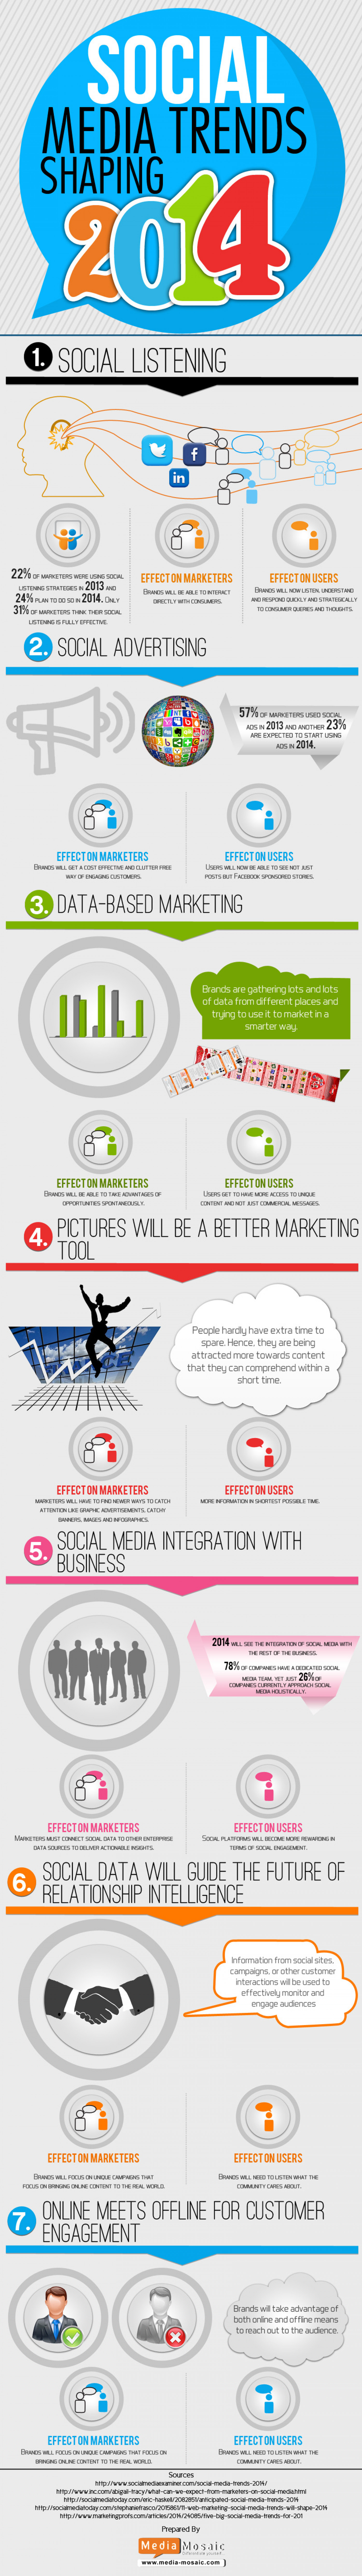 Social Media Trends Shaping 2014 Infographic